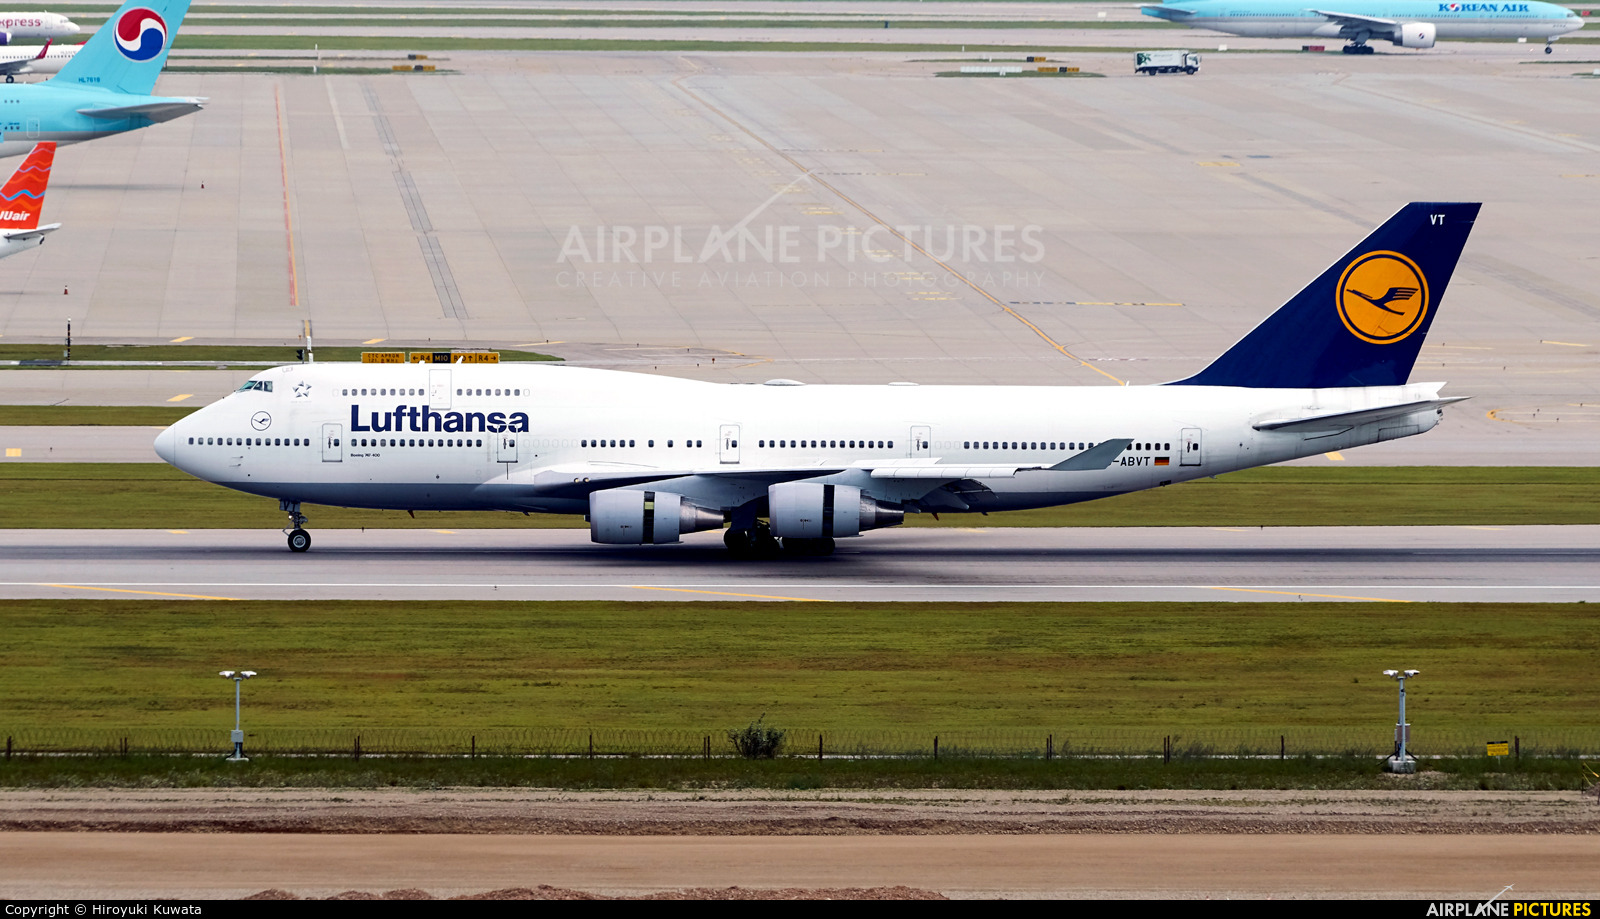 Lufthansa D-ABVT aircraft at Seoul - Incheon